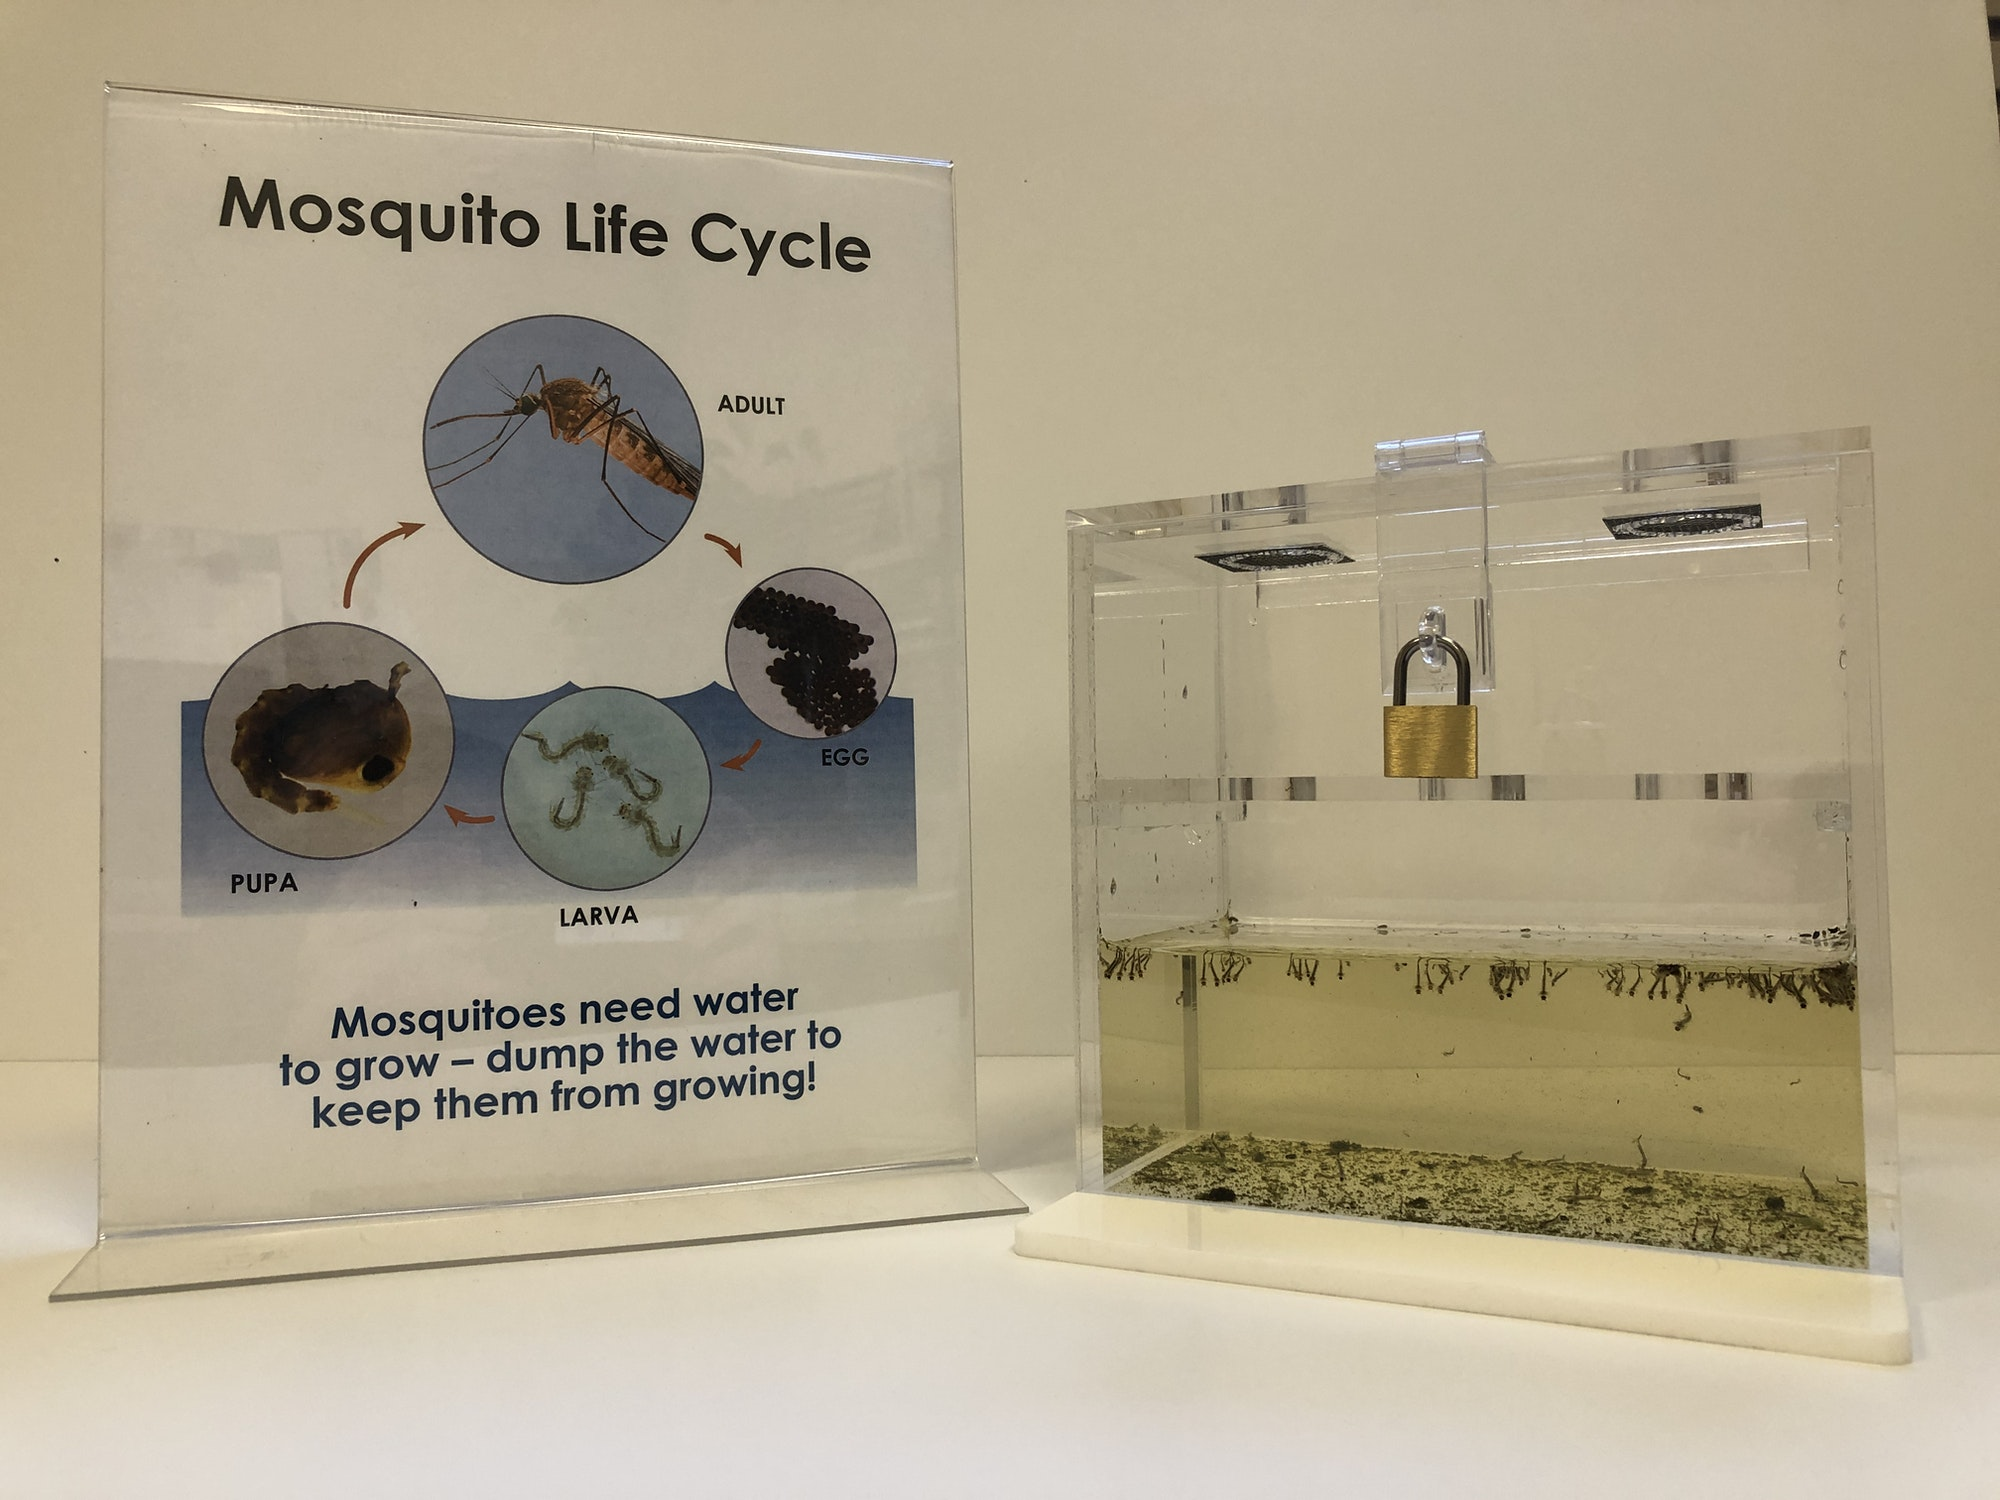 """A sign on the left says """"Mosquito Life Cycle' on top.  In the middle of the sign, there are four circles that show the stages of the mosquito life cycle (adult, egg, larva, pupa). The bottom of the sign says """"Mosquitoes need water to grow - dump the water to keep them from growing!"""".  On the right, there is a clear plastic aquarium.  The aquarium is about half filled with light green colored water. The water has little mosquito larva floating near the surface. A small lock keeps the aquarium closed."""